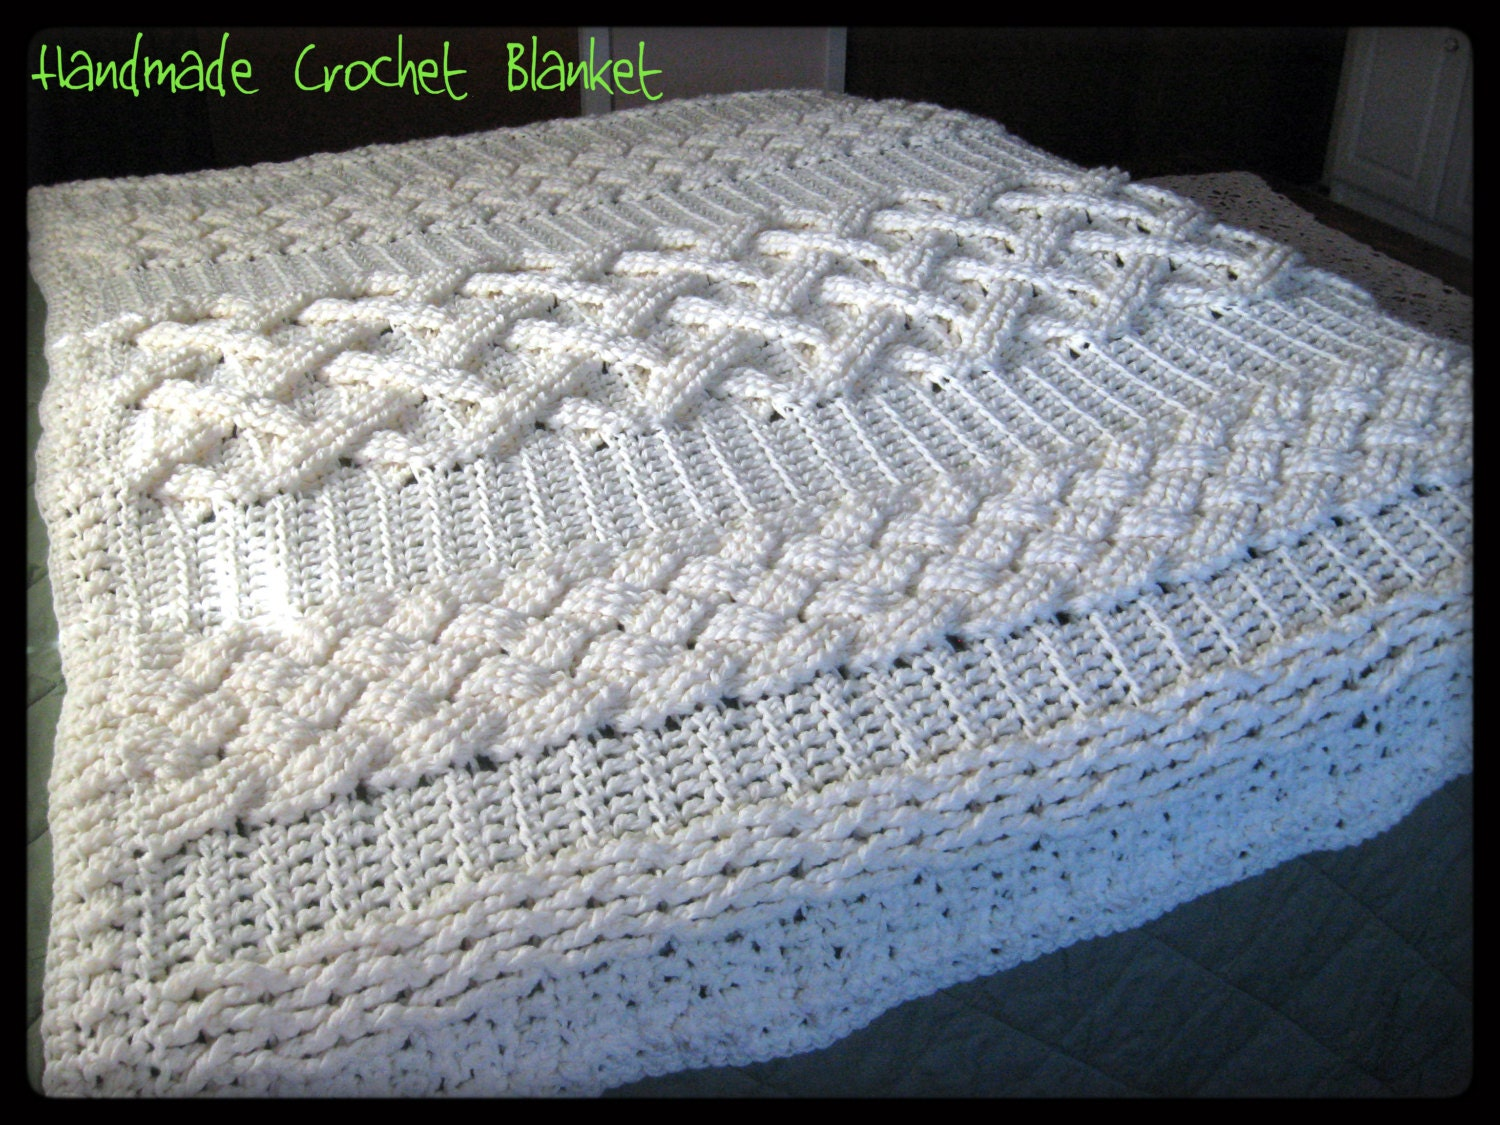 Crochet Cable Stitch Afghan Patterns : Items similar to HUGH SALE on Crochet Cable Afghan, Aran ...